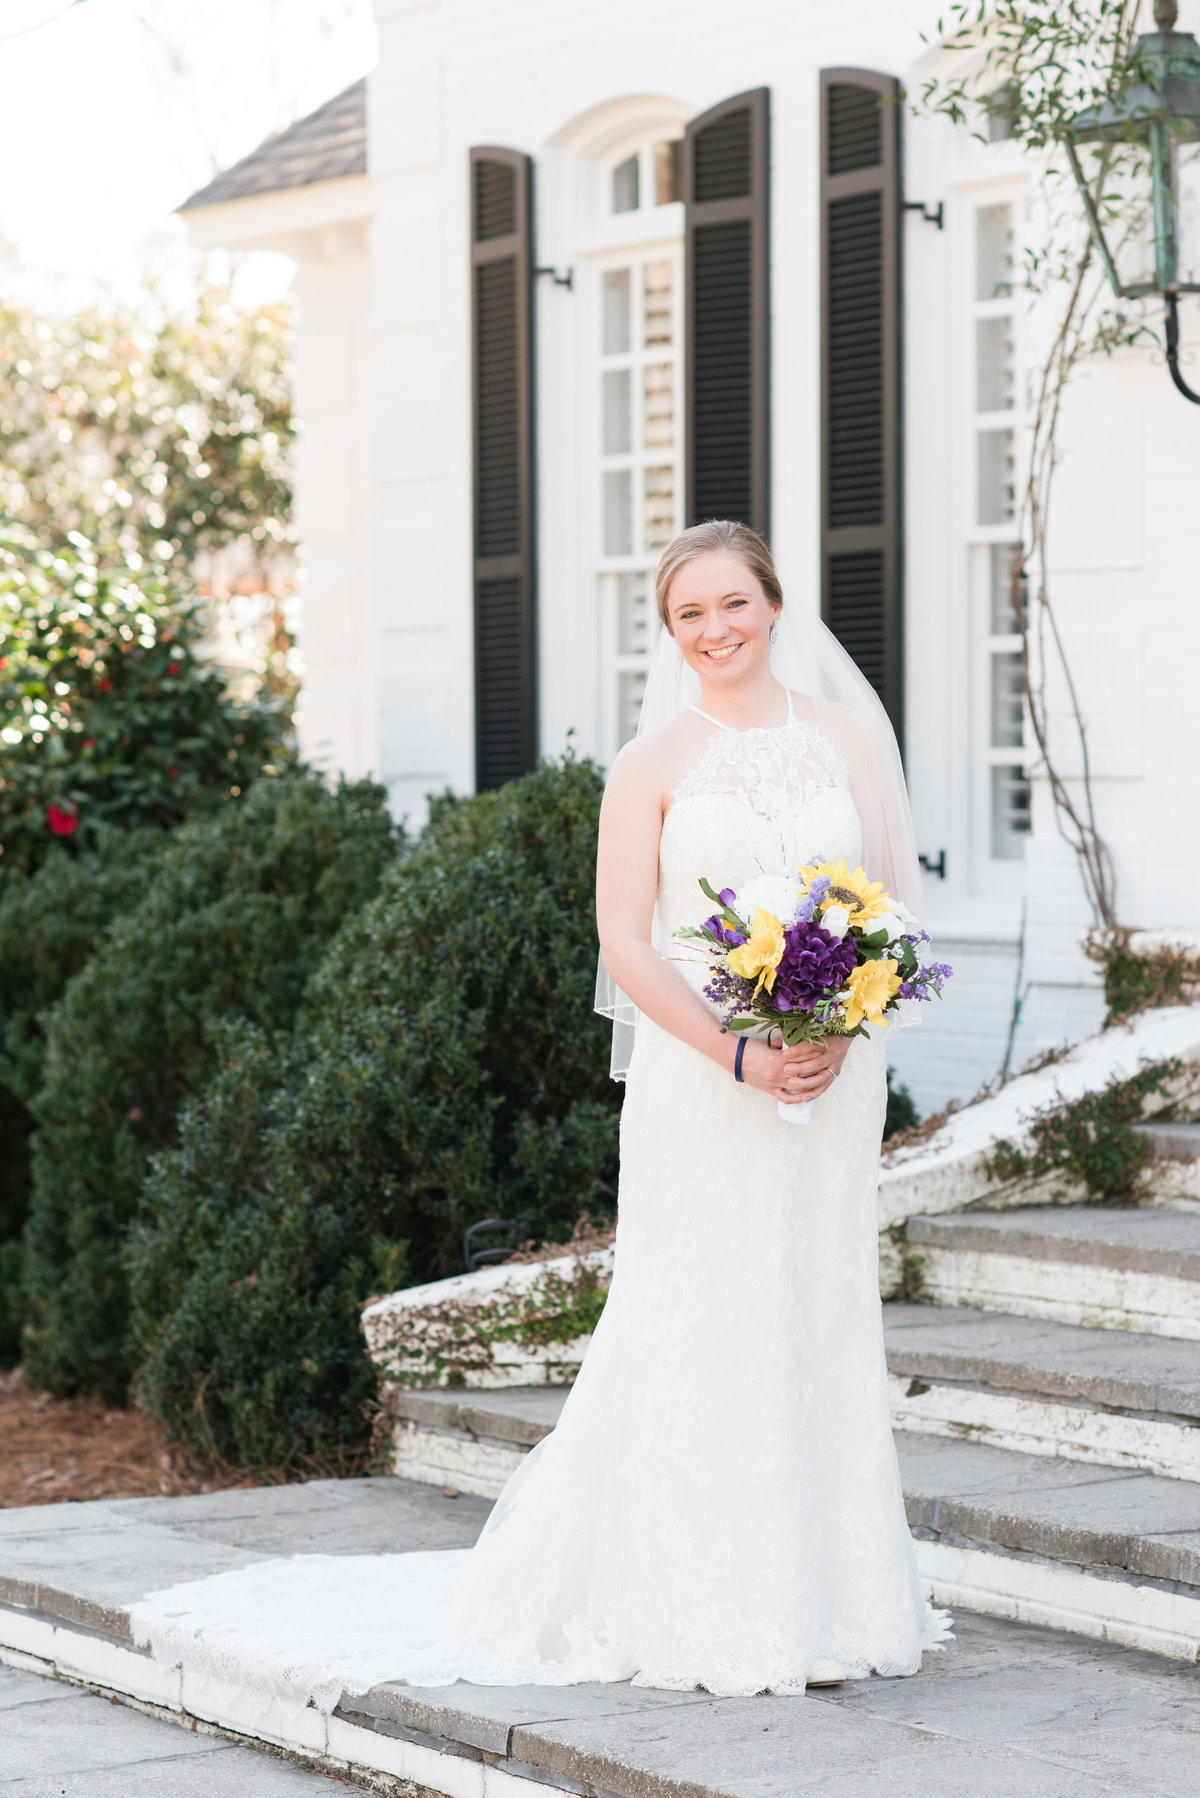 A New Bern Bridal Session, Michelle & Sara Photography, New Bern NC3